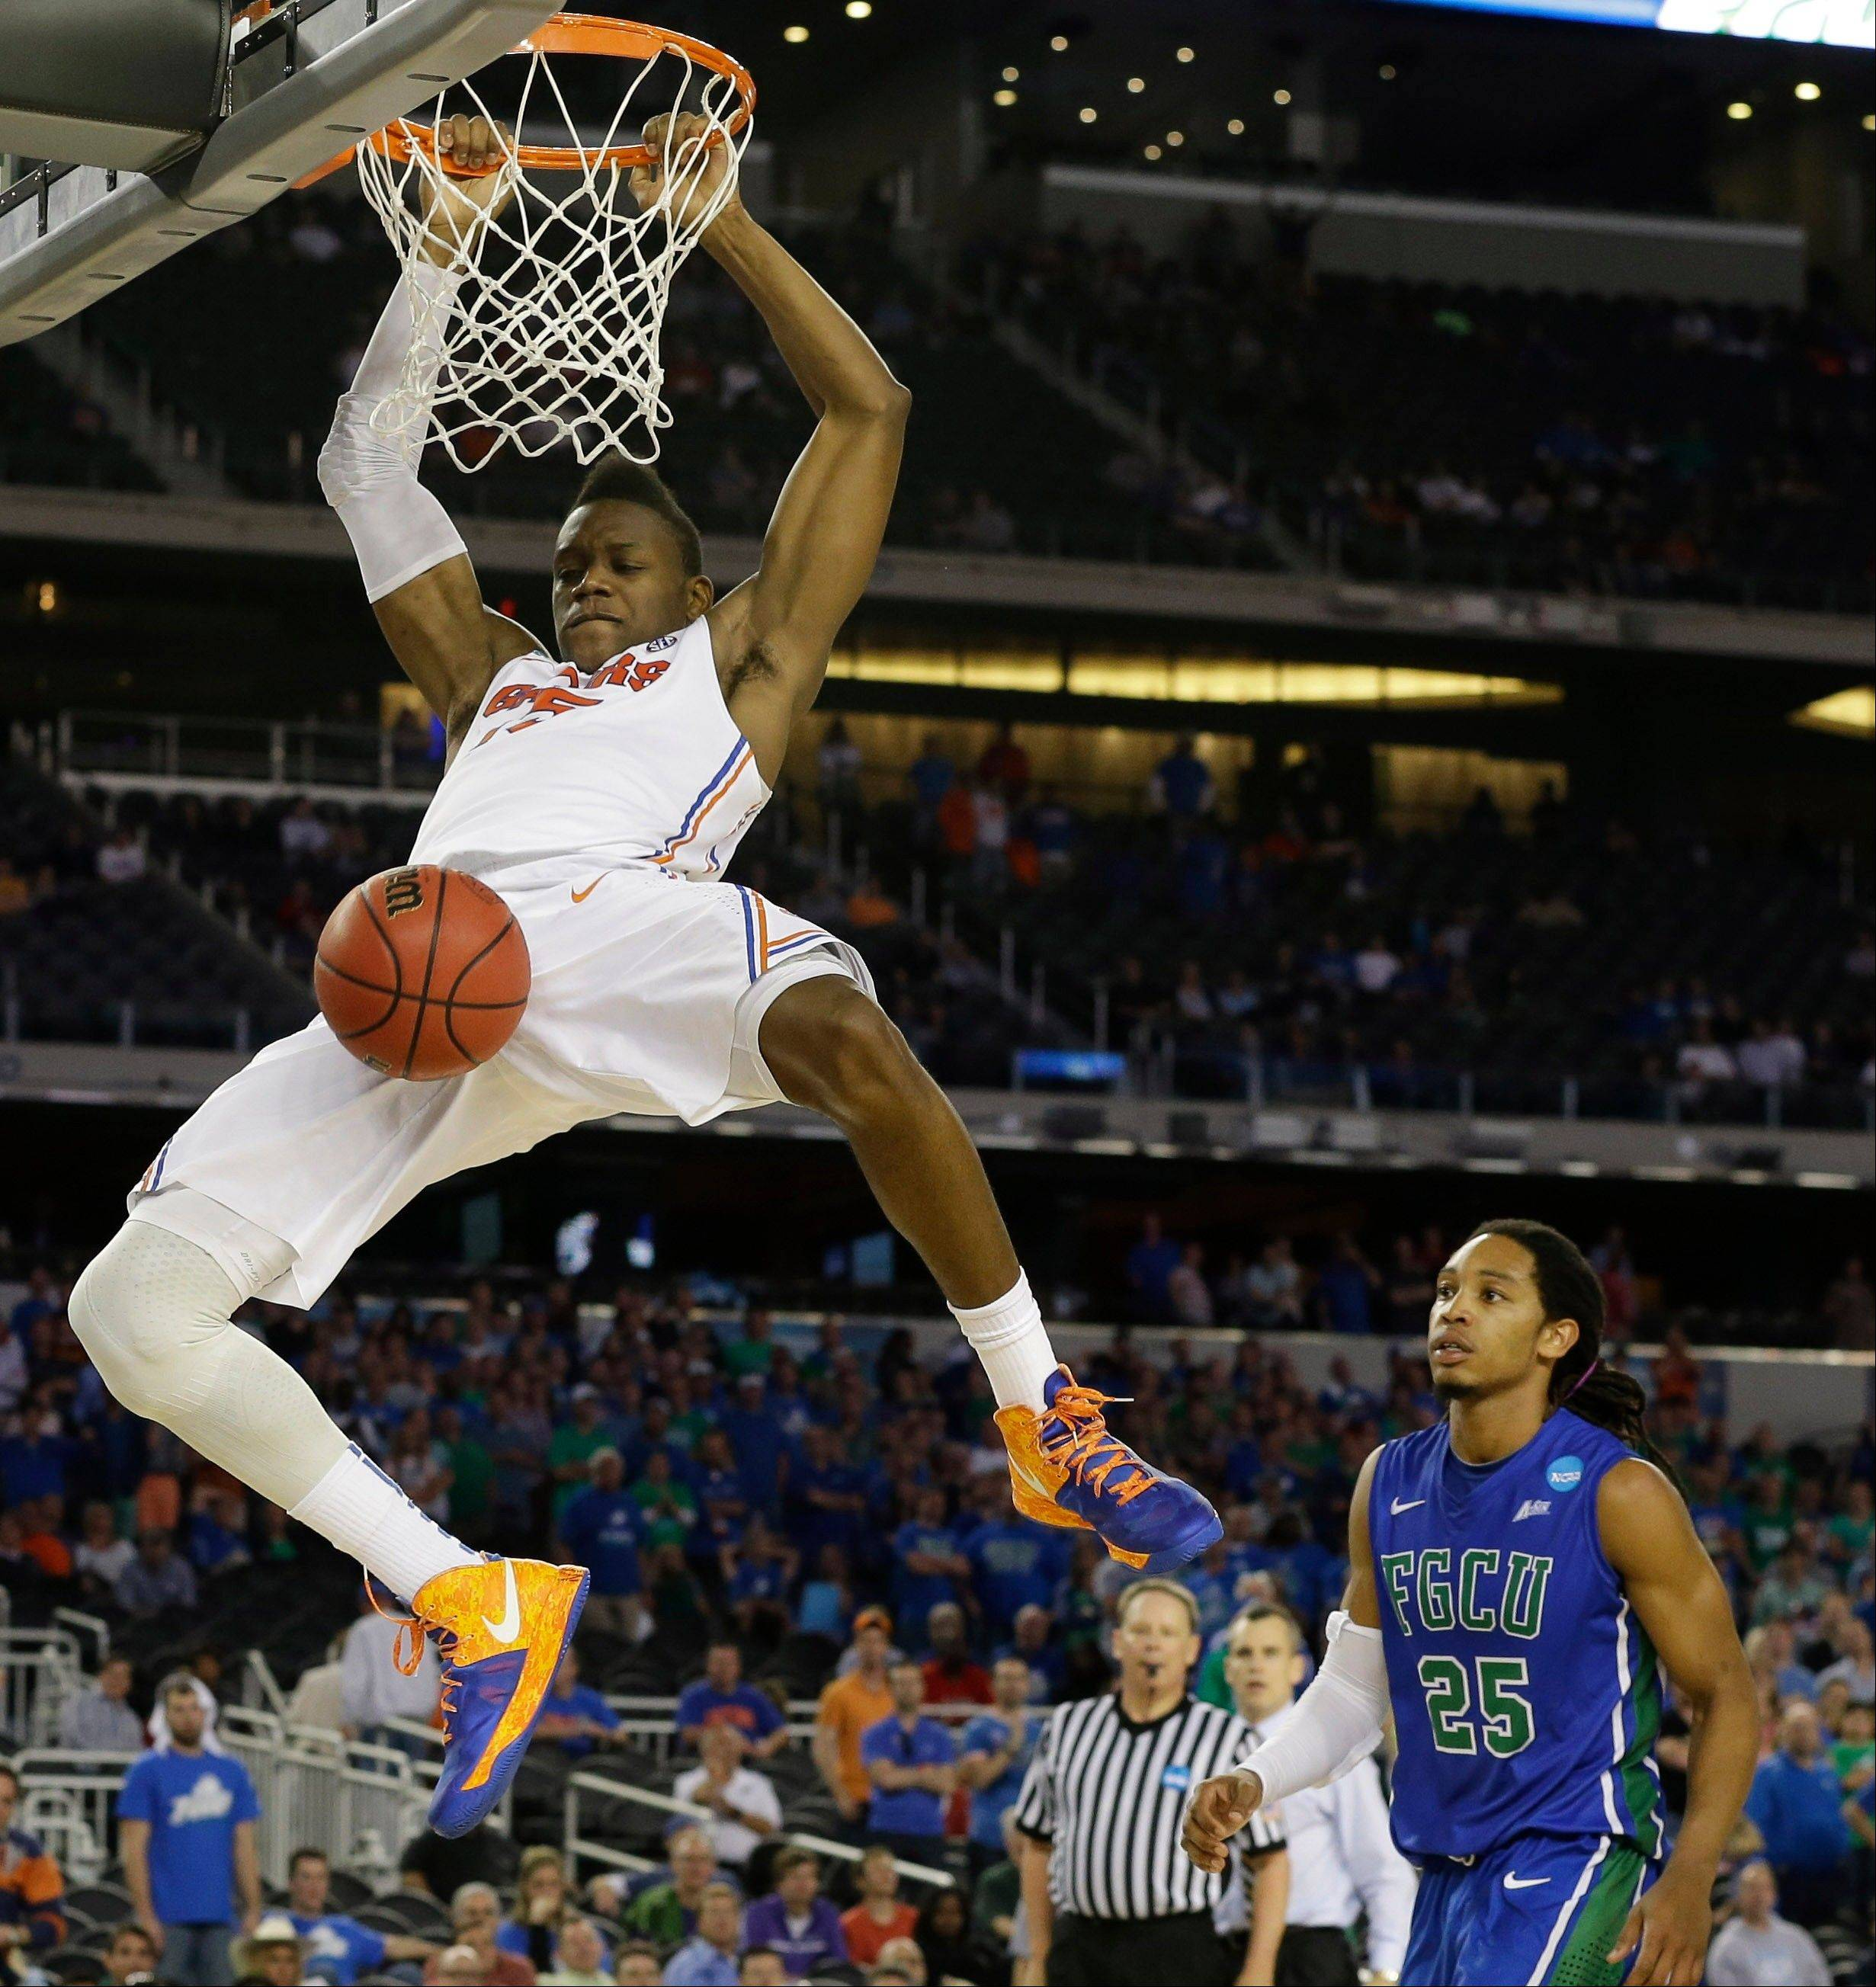 Florida's Will Yeguete dunks against Florida Gulf Coast during the second half of a regional semifinal game in the NCAA college basketball tournament, Saturday, March 30, 2013, in Arlington, Texas.